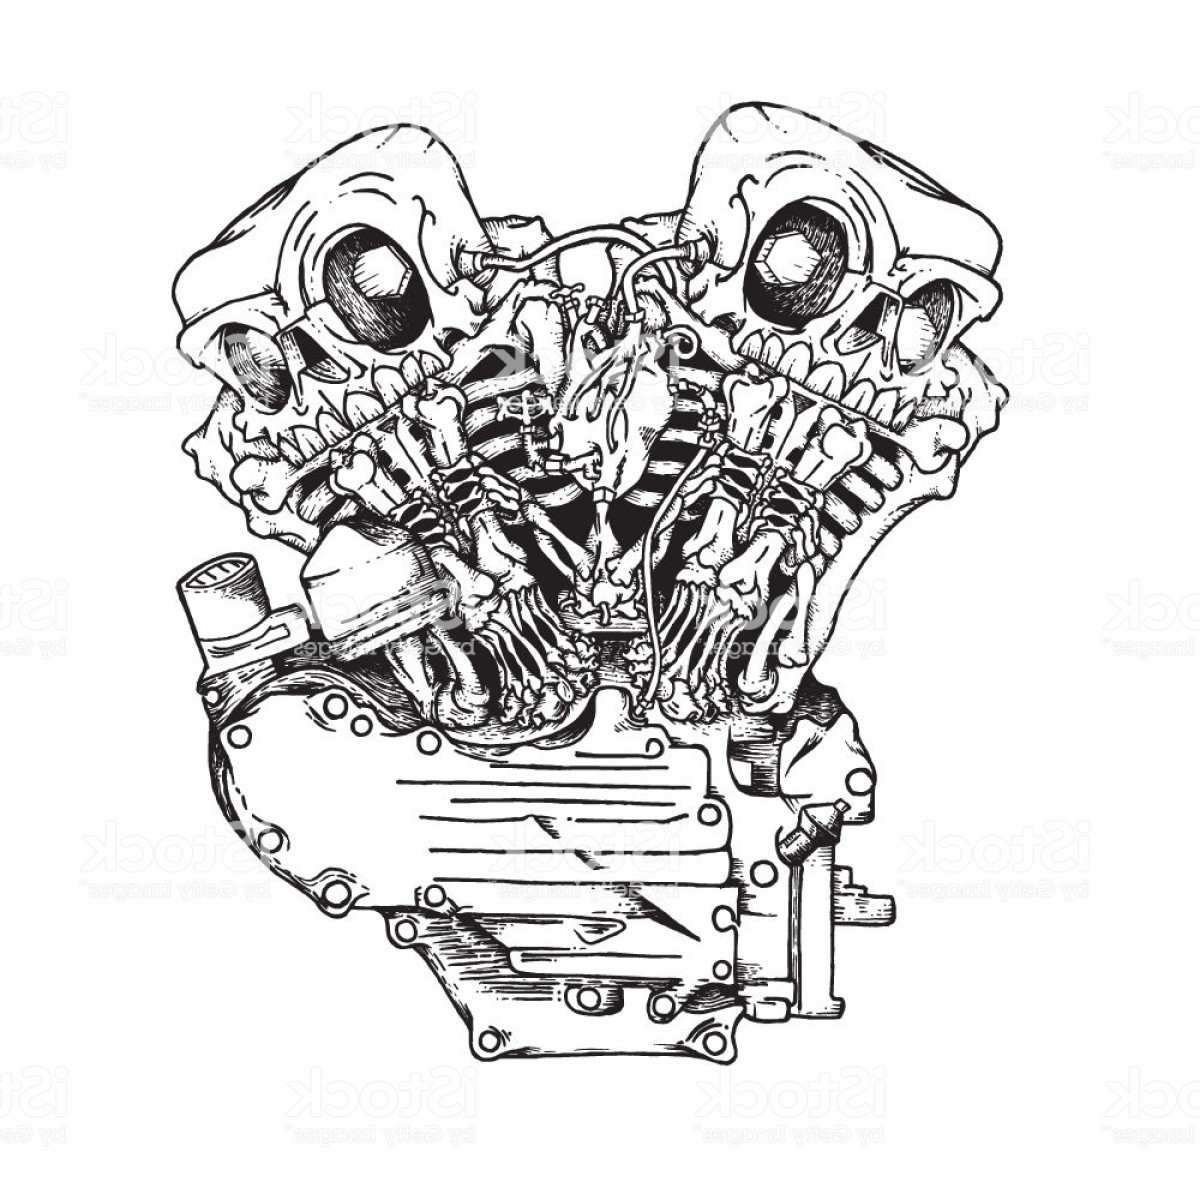 Stylized Vector Motorcycle: Stylized Knuckle Twin Motorcycle Engine Gm